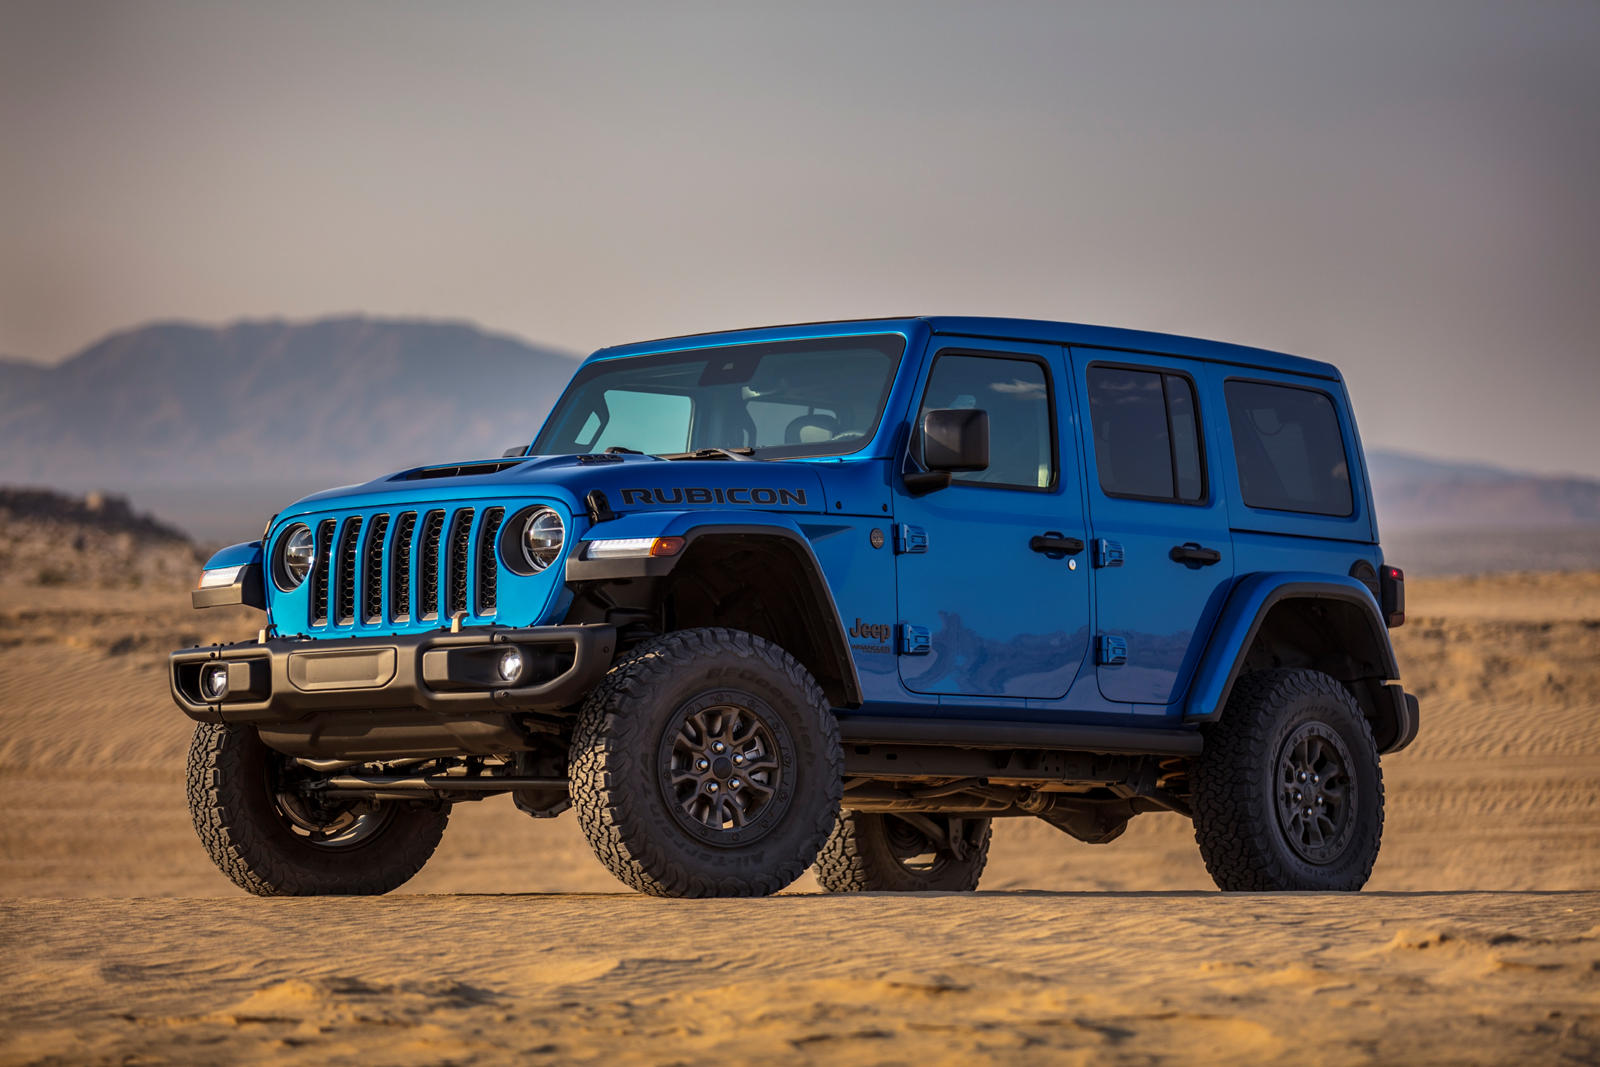 Used Jeep Wrangler Rubicon 392 Check Wrangler Rubicon 392 For Sale In Usa Prices Of Every Dealership Carbuzz